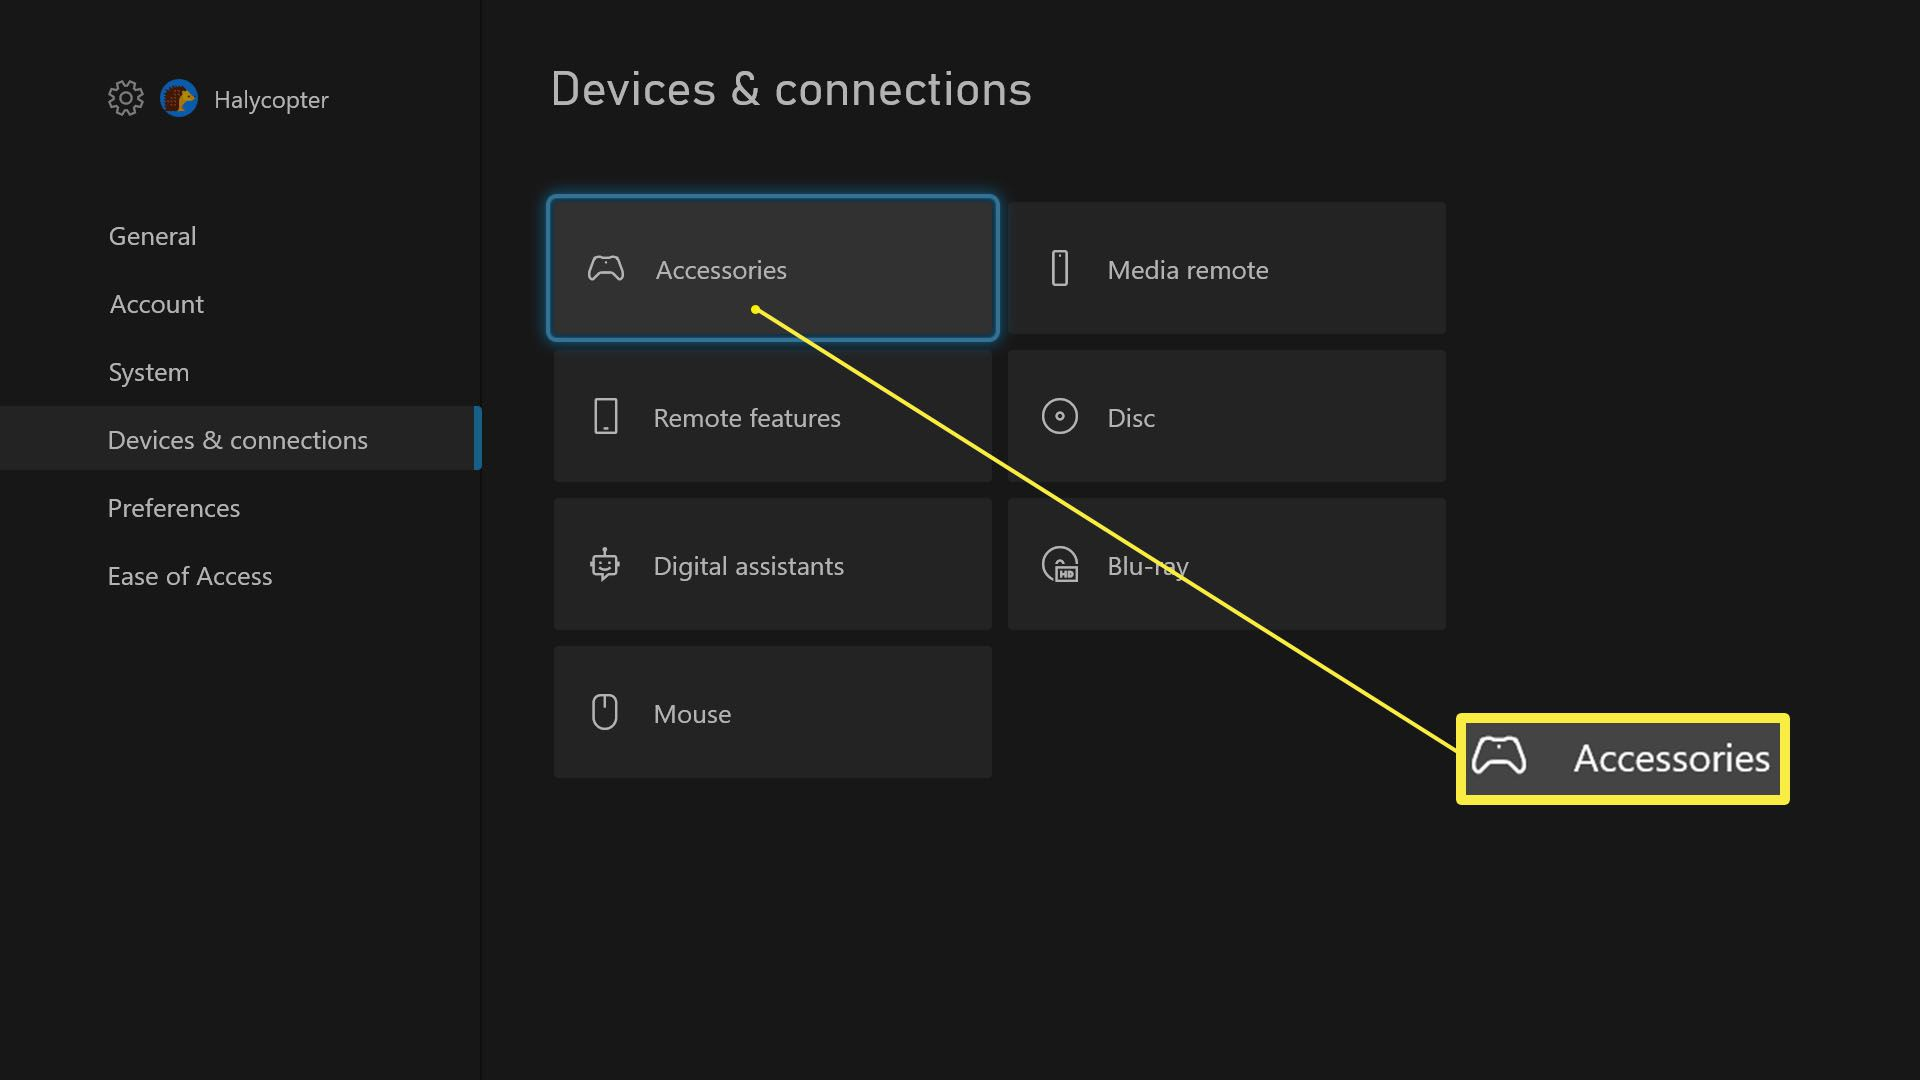 Xbox Series X/S Settings with Accessories highlighted